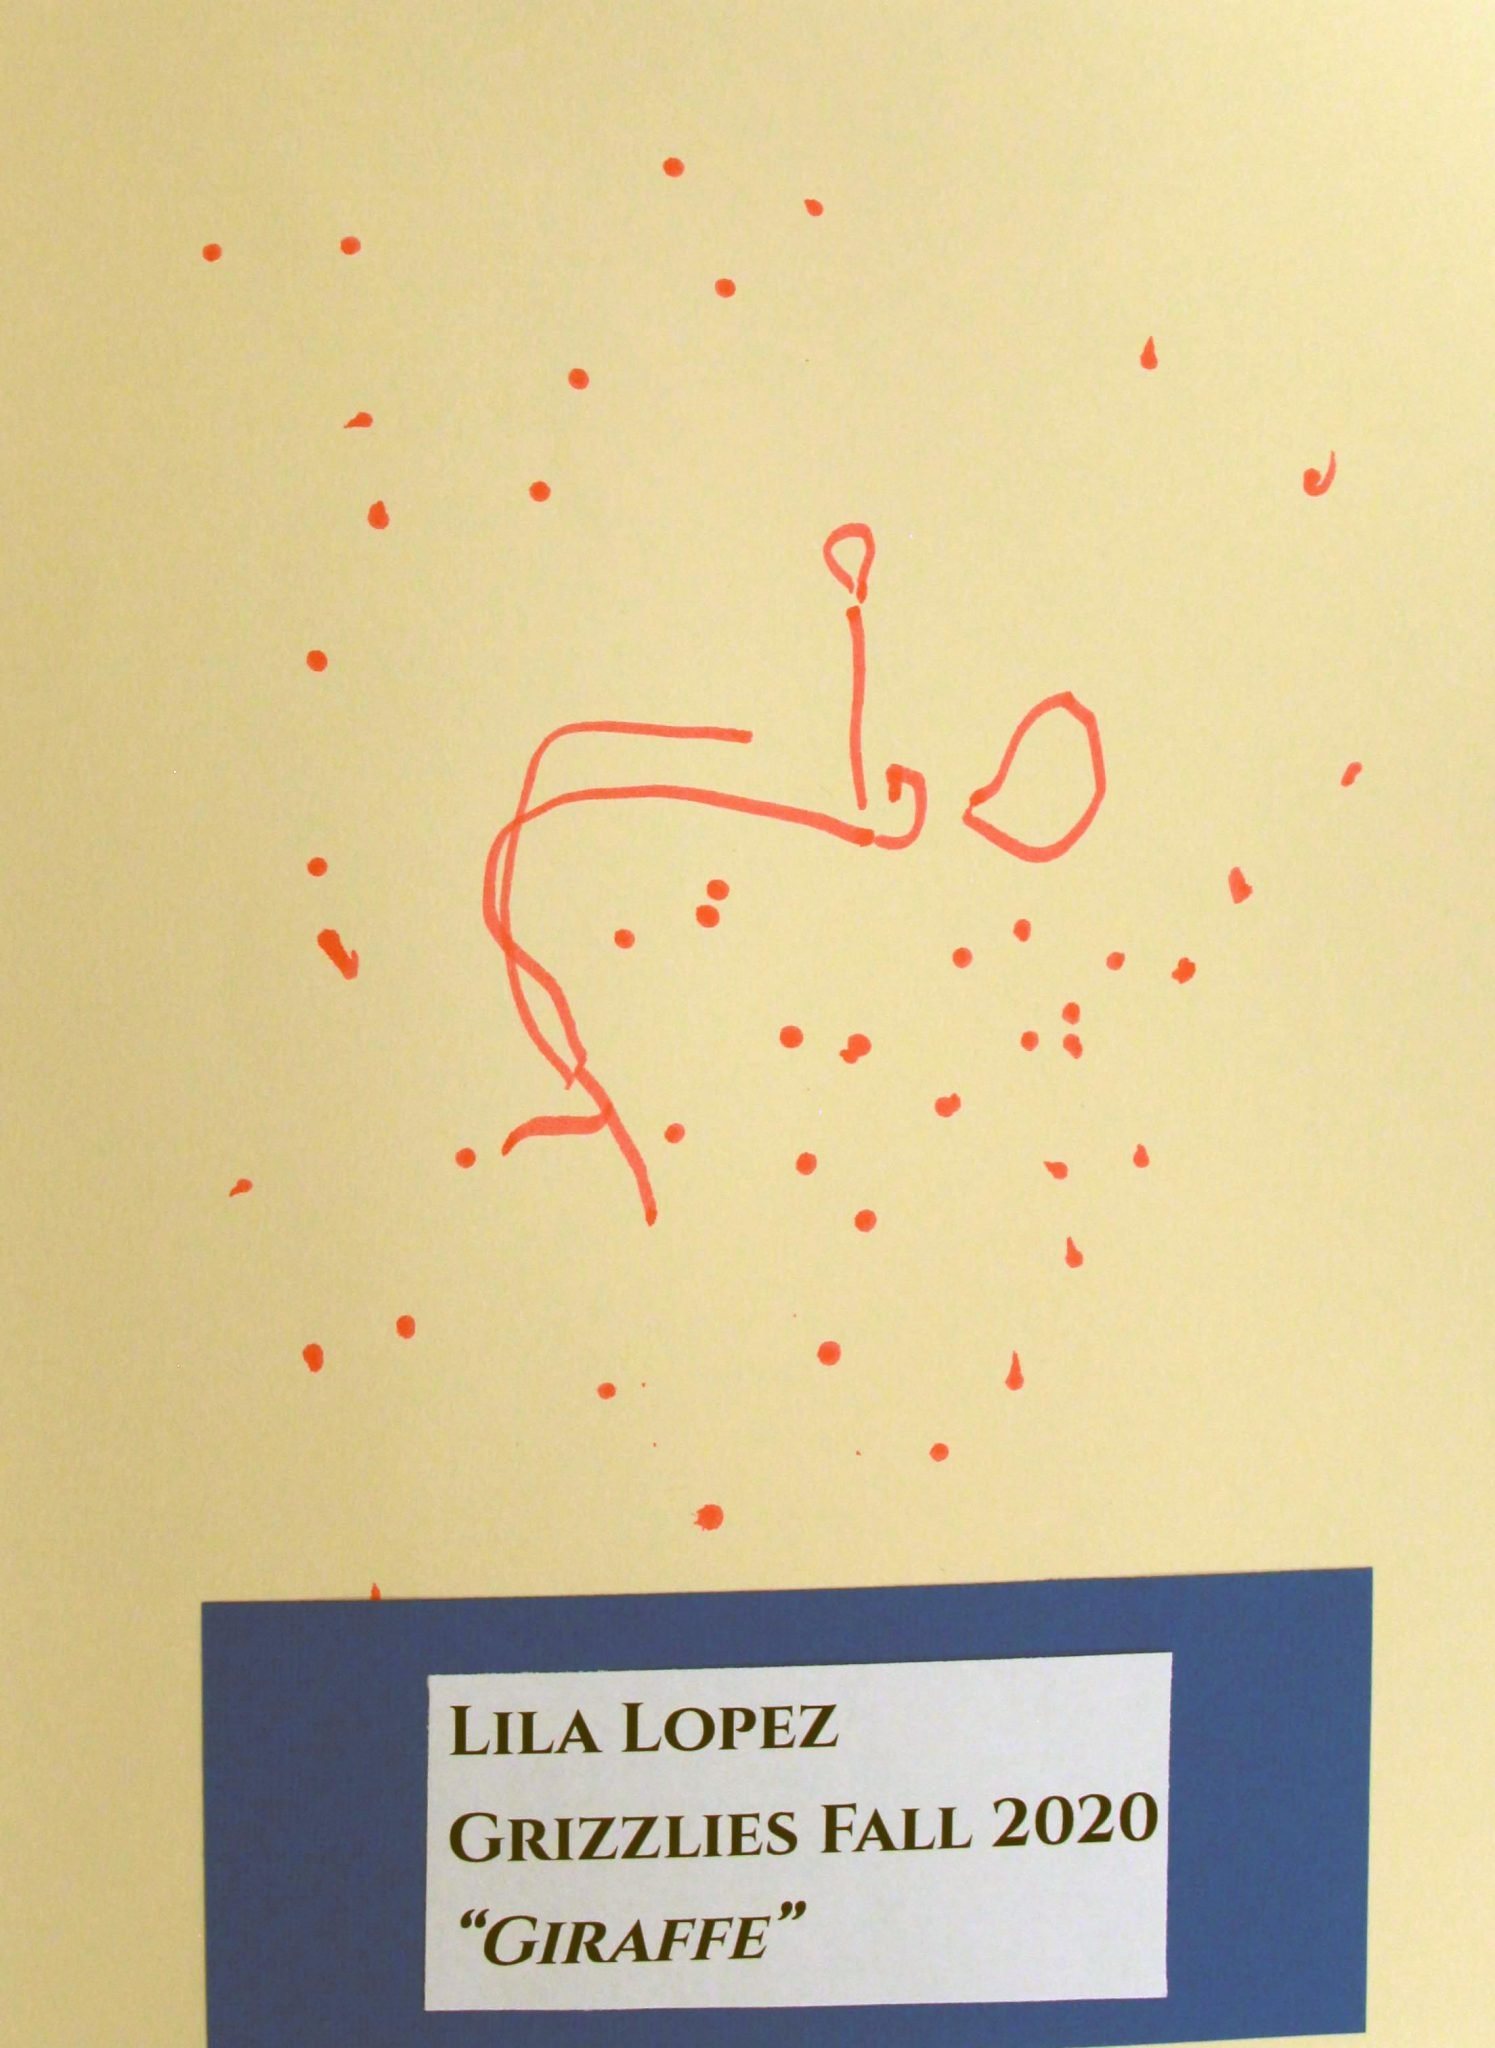 Lila Lopez, of Grizzlies group, drawing, Fall 2020